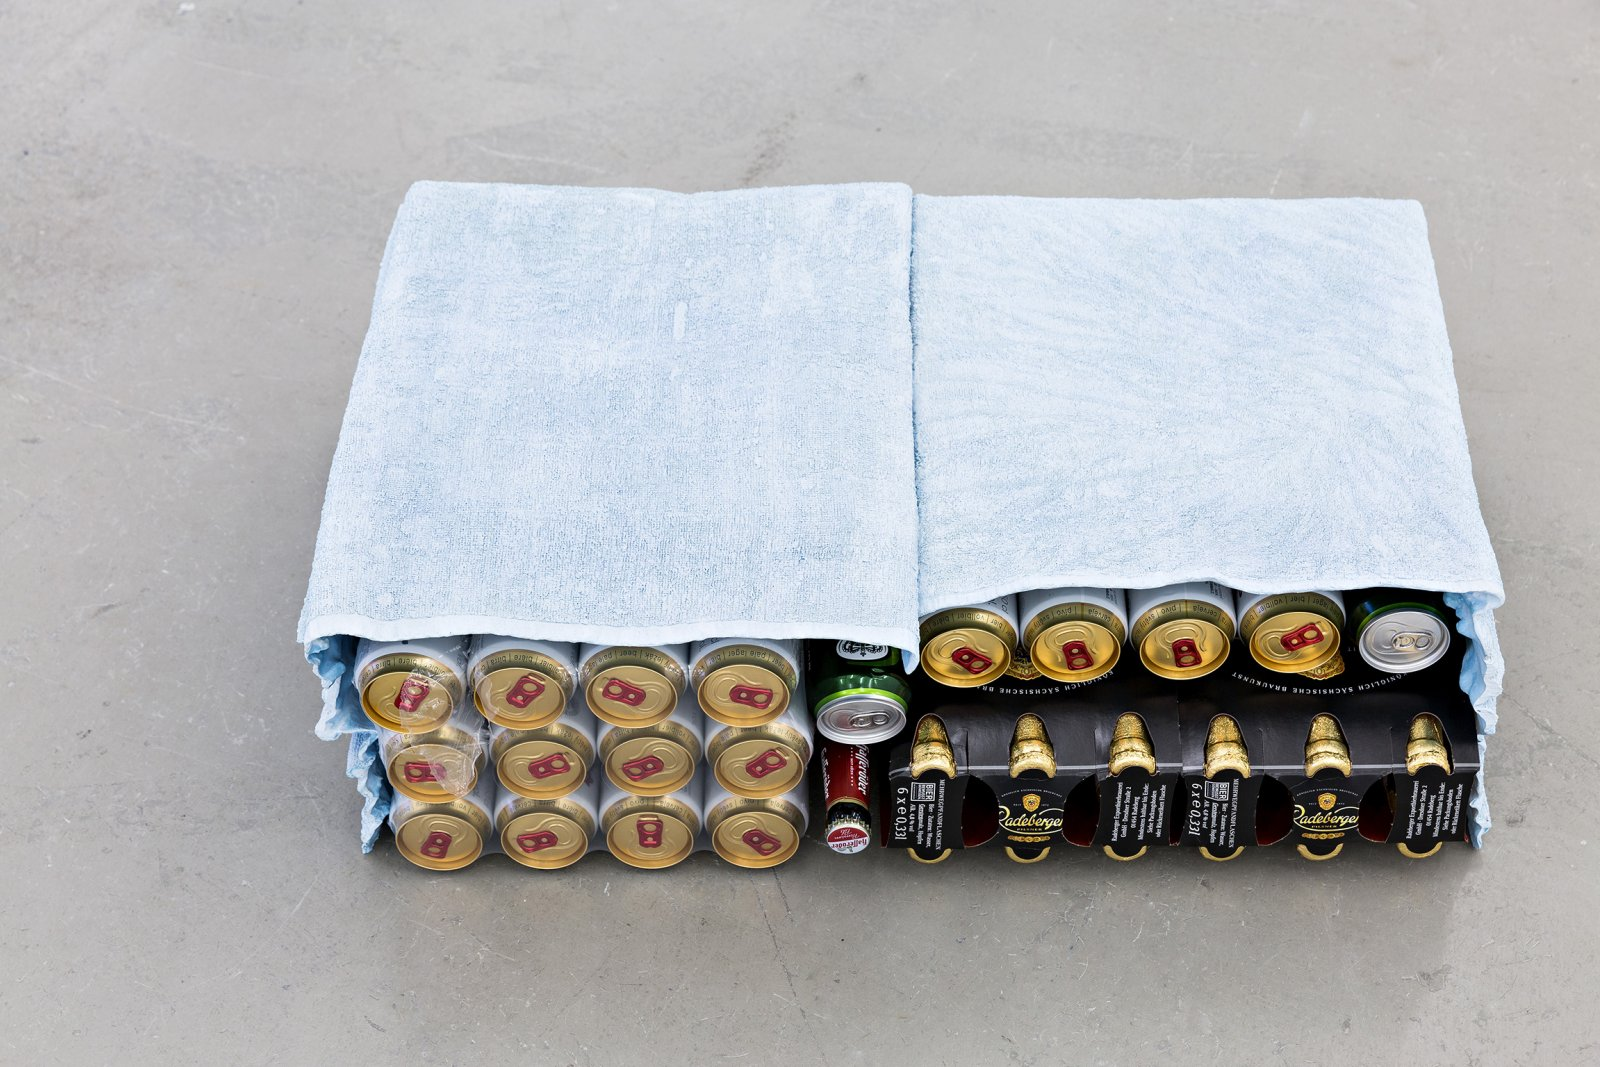 Liz Magor, Double Cabinet (blue), 2001, polymerized gypsum, cans of beer, 9 x 27 x 17 in. (24 x 69 x 43 cm) by Liz Magor